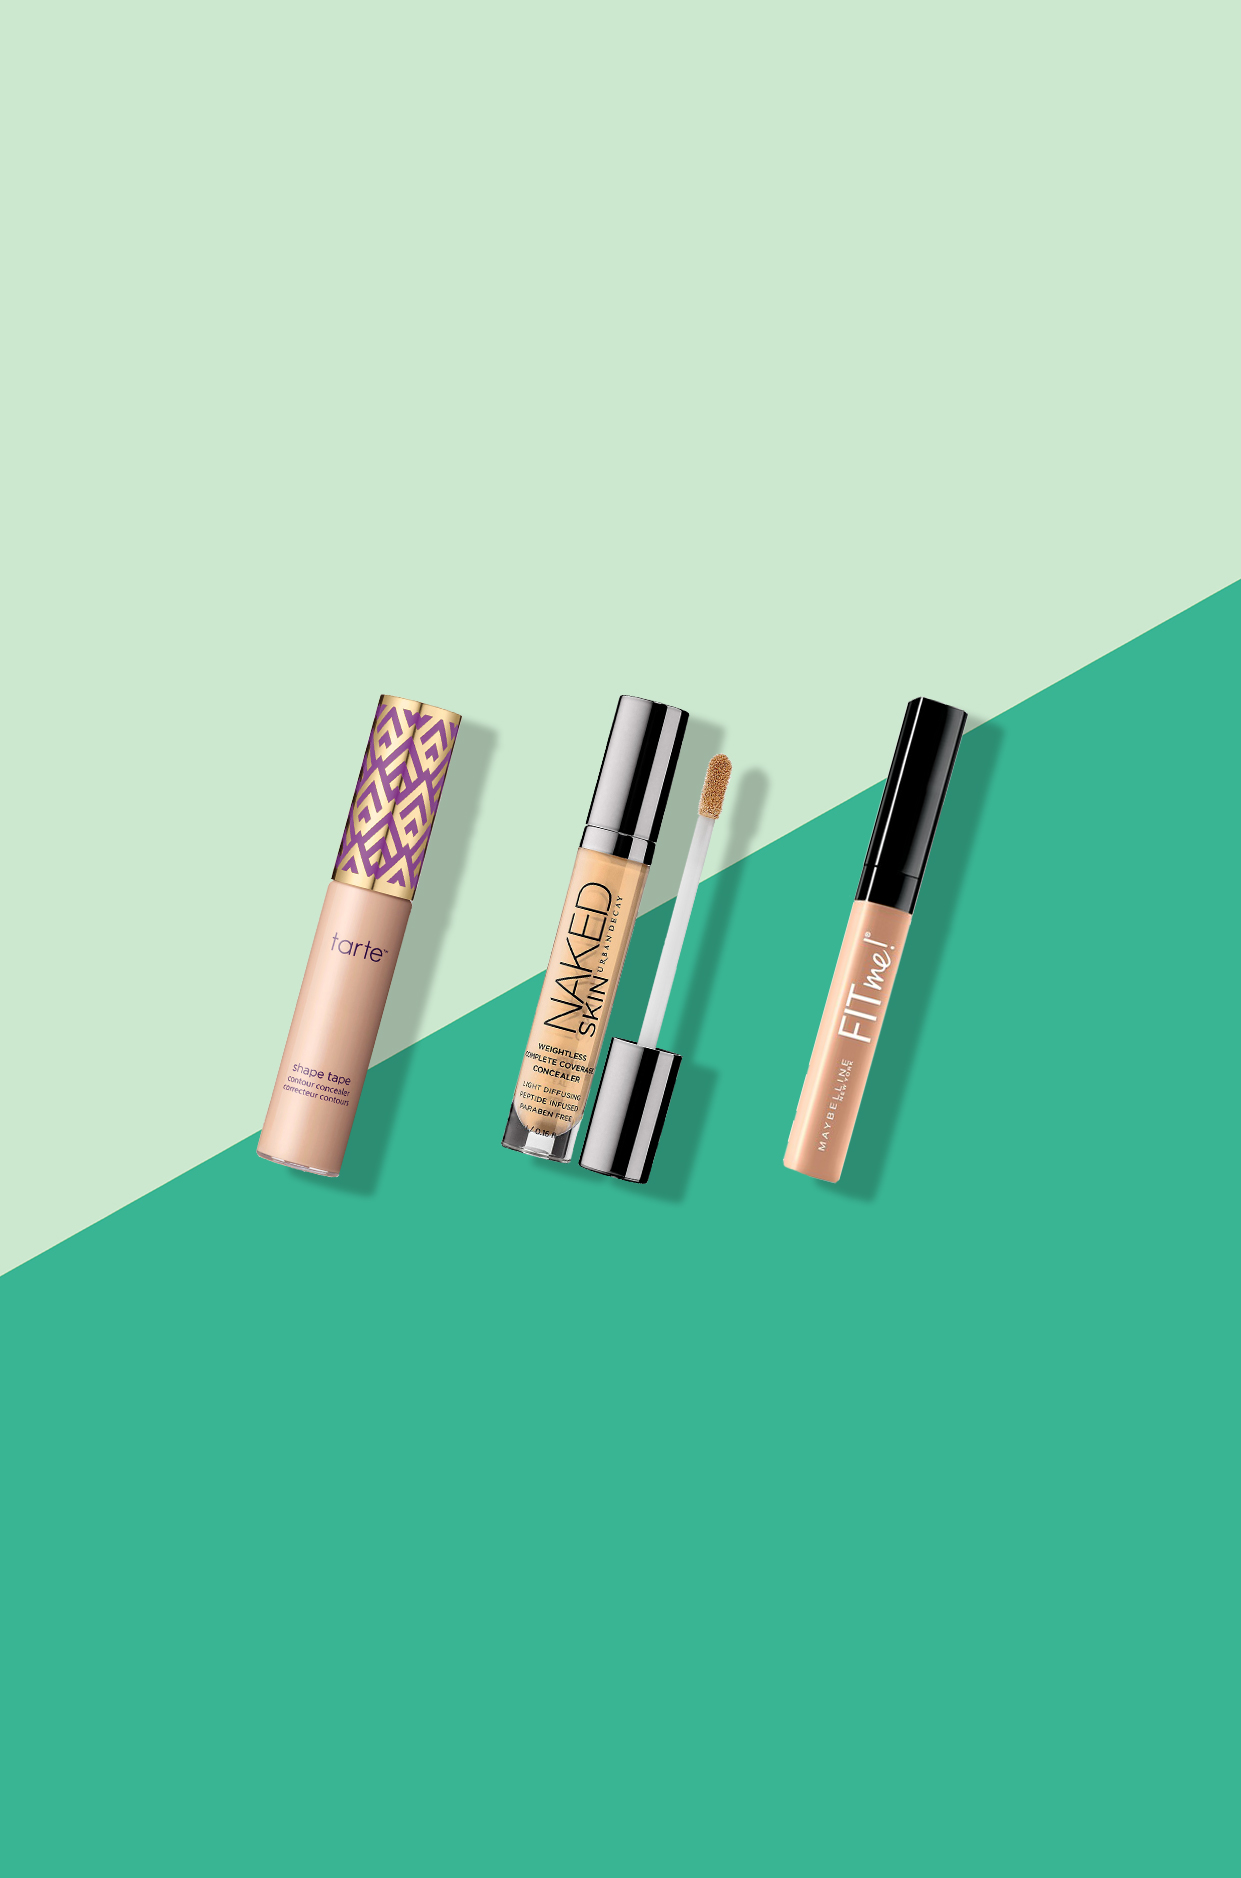 The Best Full Coverage Concealers For Acne Scars And Hyperpigmentation